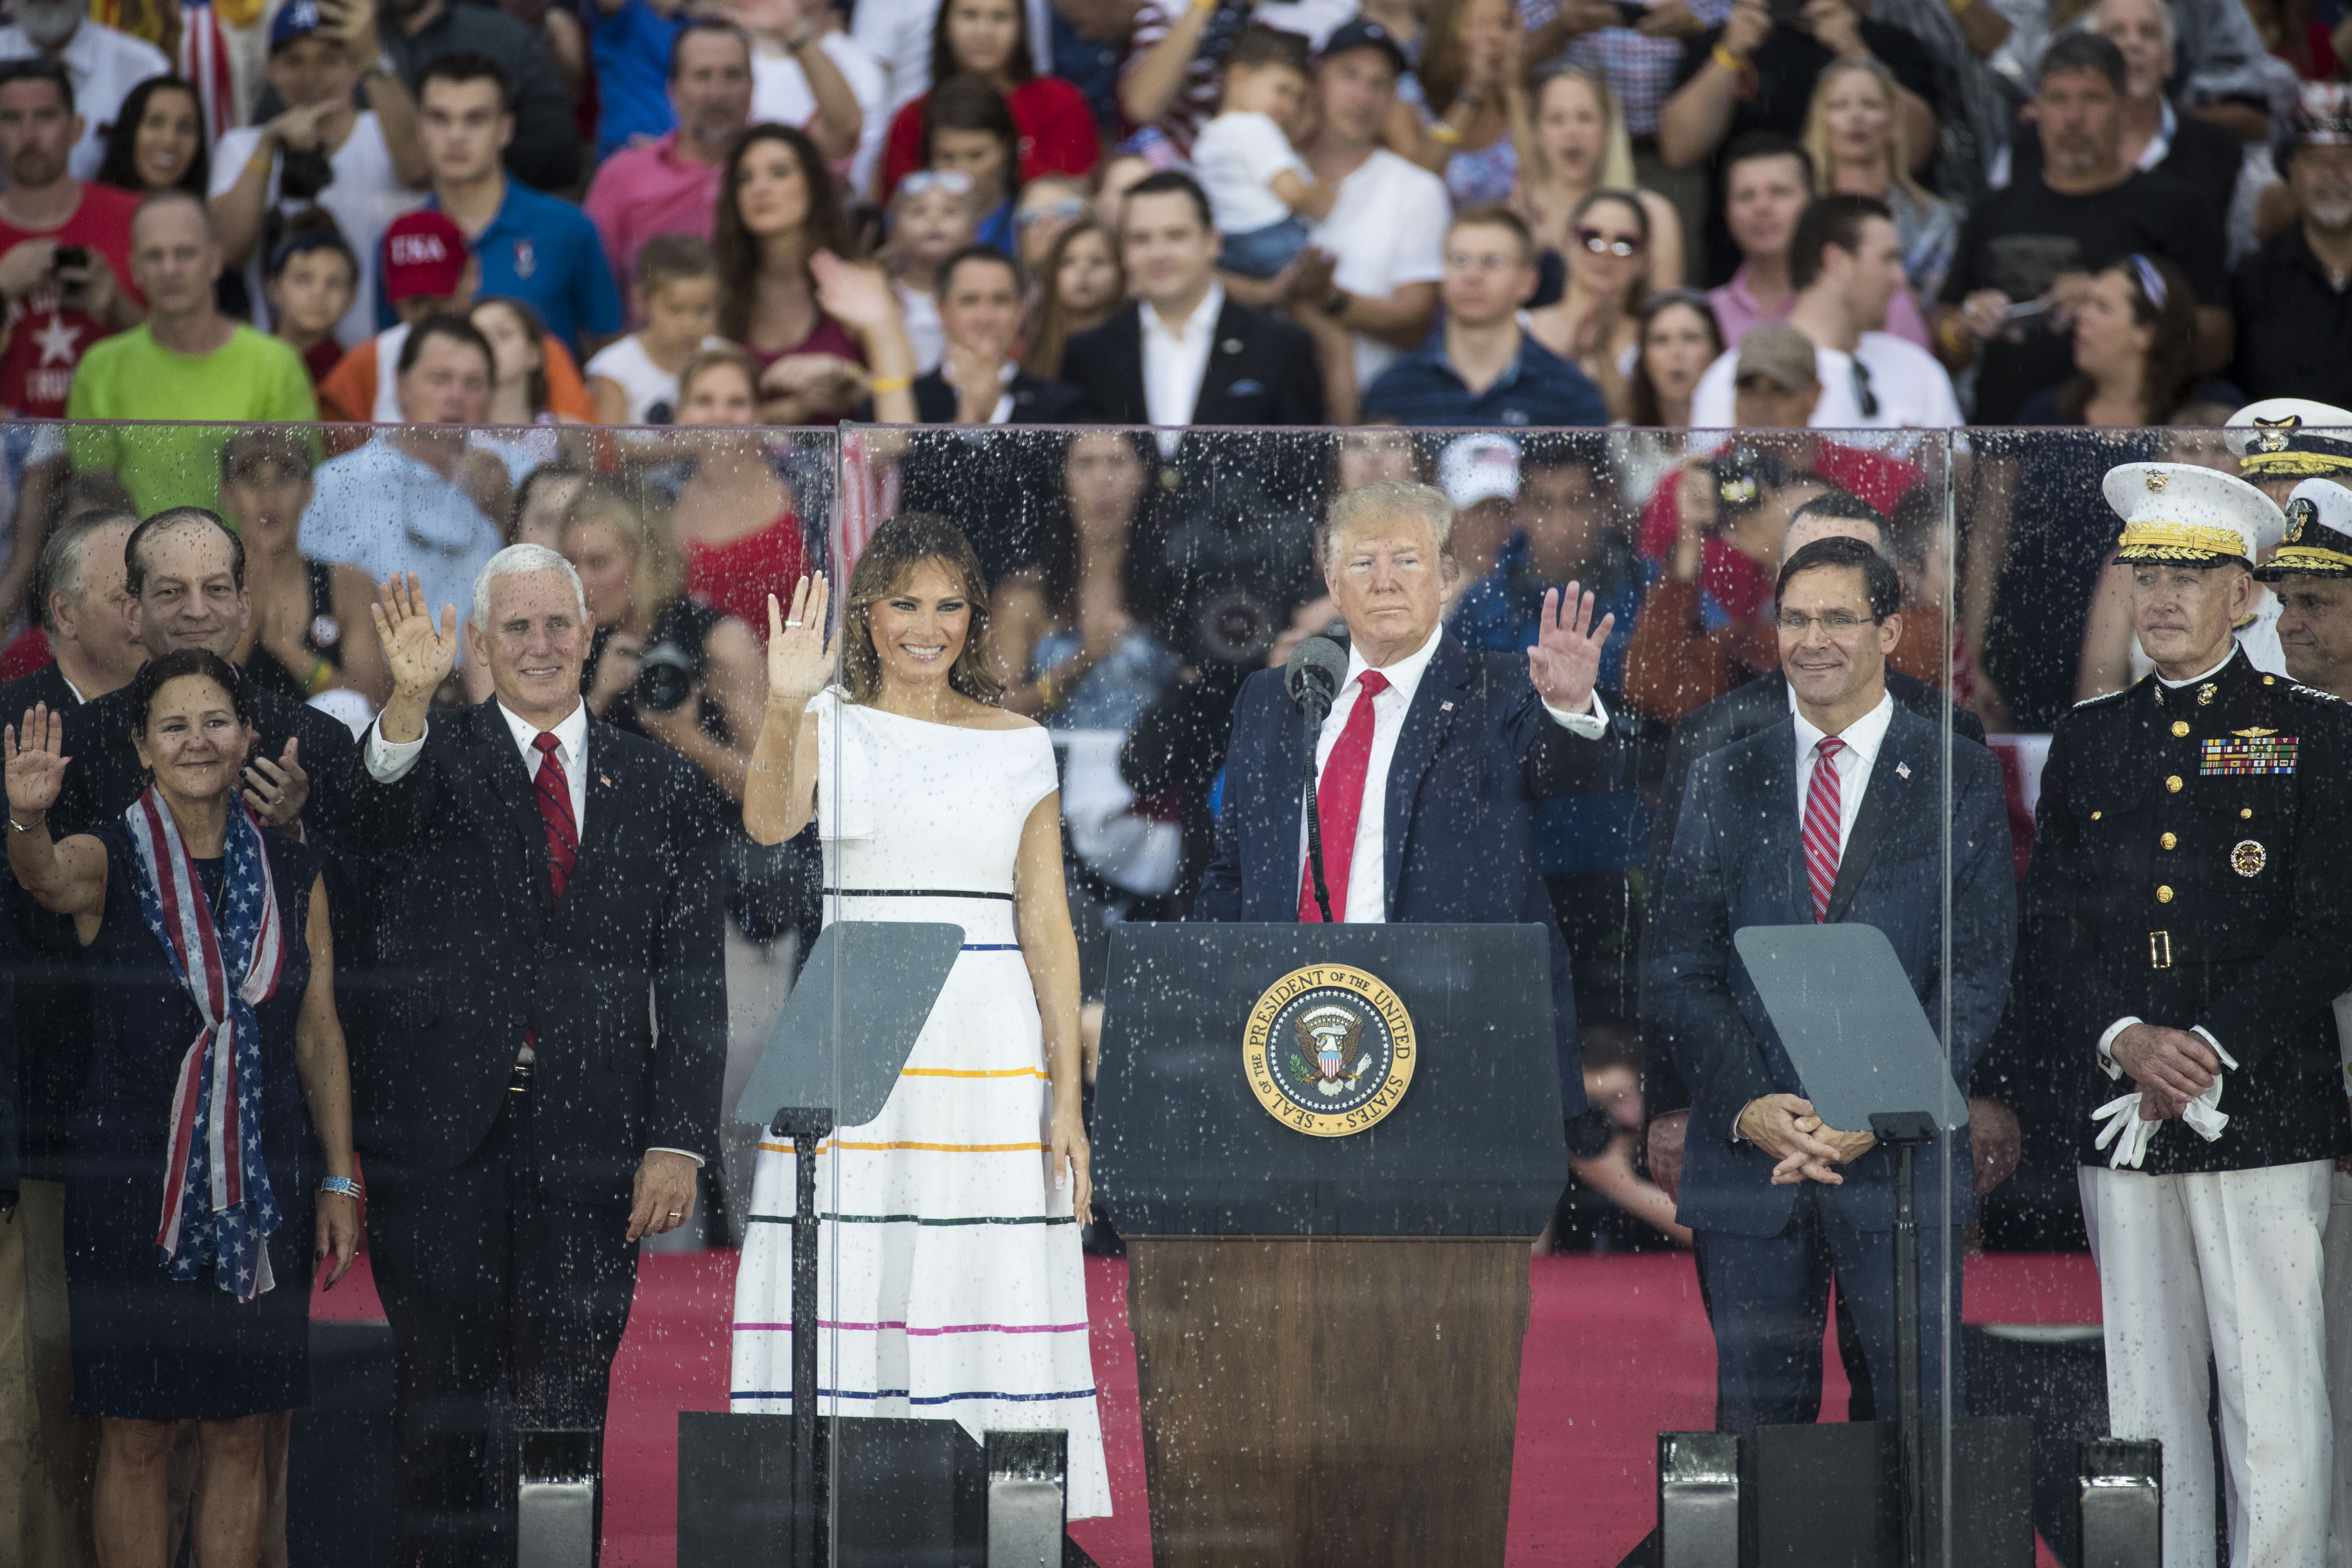 """WASHINGTON, DC - JULY 04: President Donald Trump, First Lady Melania Trump, Vice President Mike Pence and Second Lady Karen Pence stand on stage after President Donald Trump spoke at the """"Salute to America"""" ceremony in front of the Lincoln Memorial, on July 4, 2019 in Washington, DC. The presentation featured armored vehicles on display, a flyover by Air Force One, and several flyovers by other military aircraft. (Photo by Sarah Silbiger/Getty Images)"""